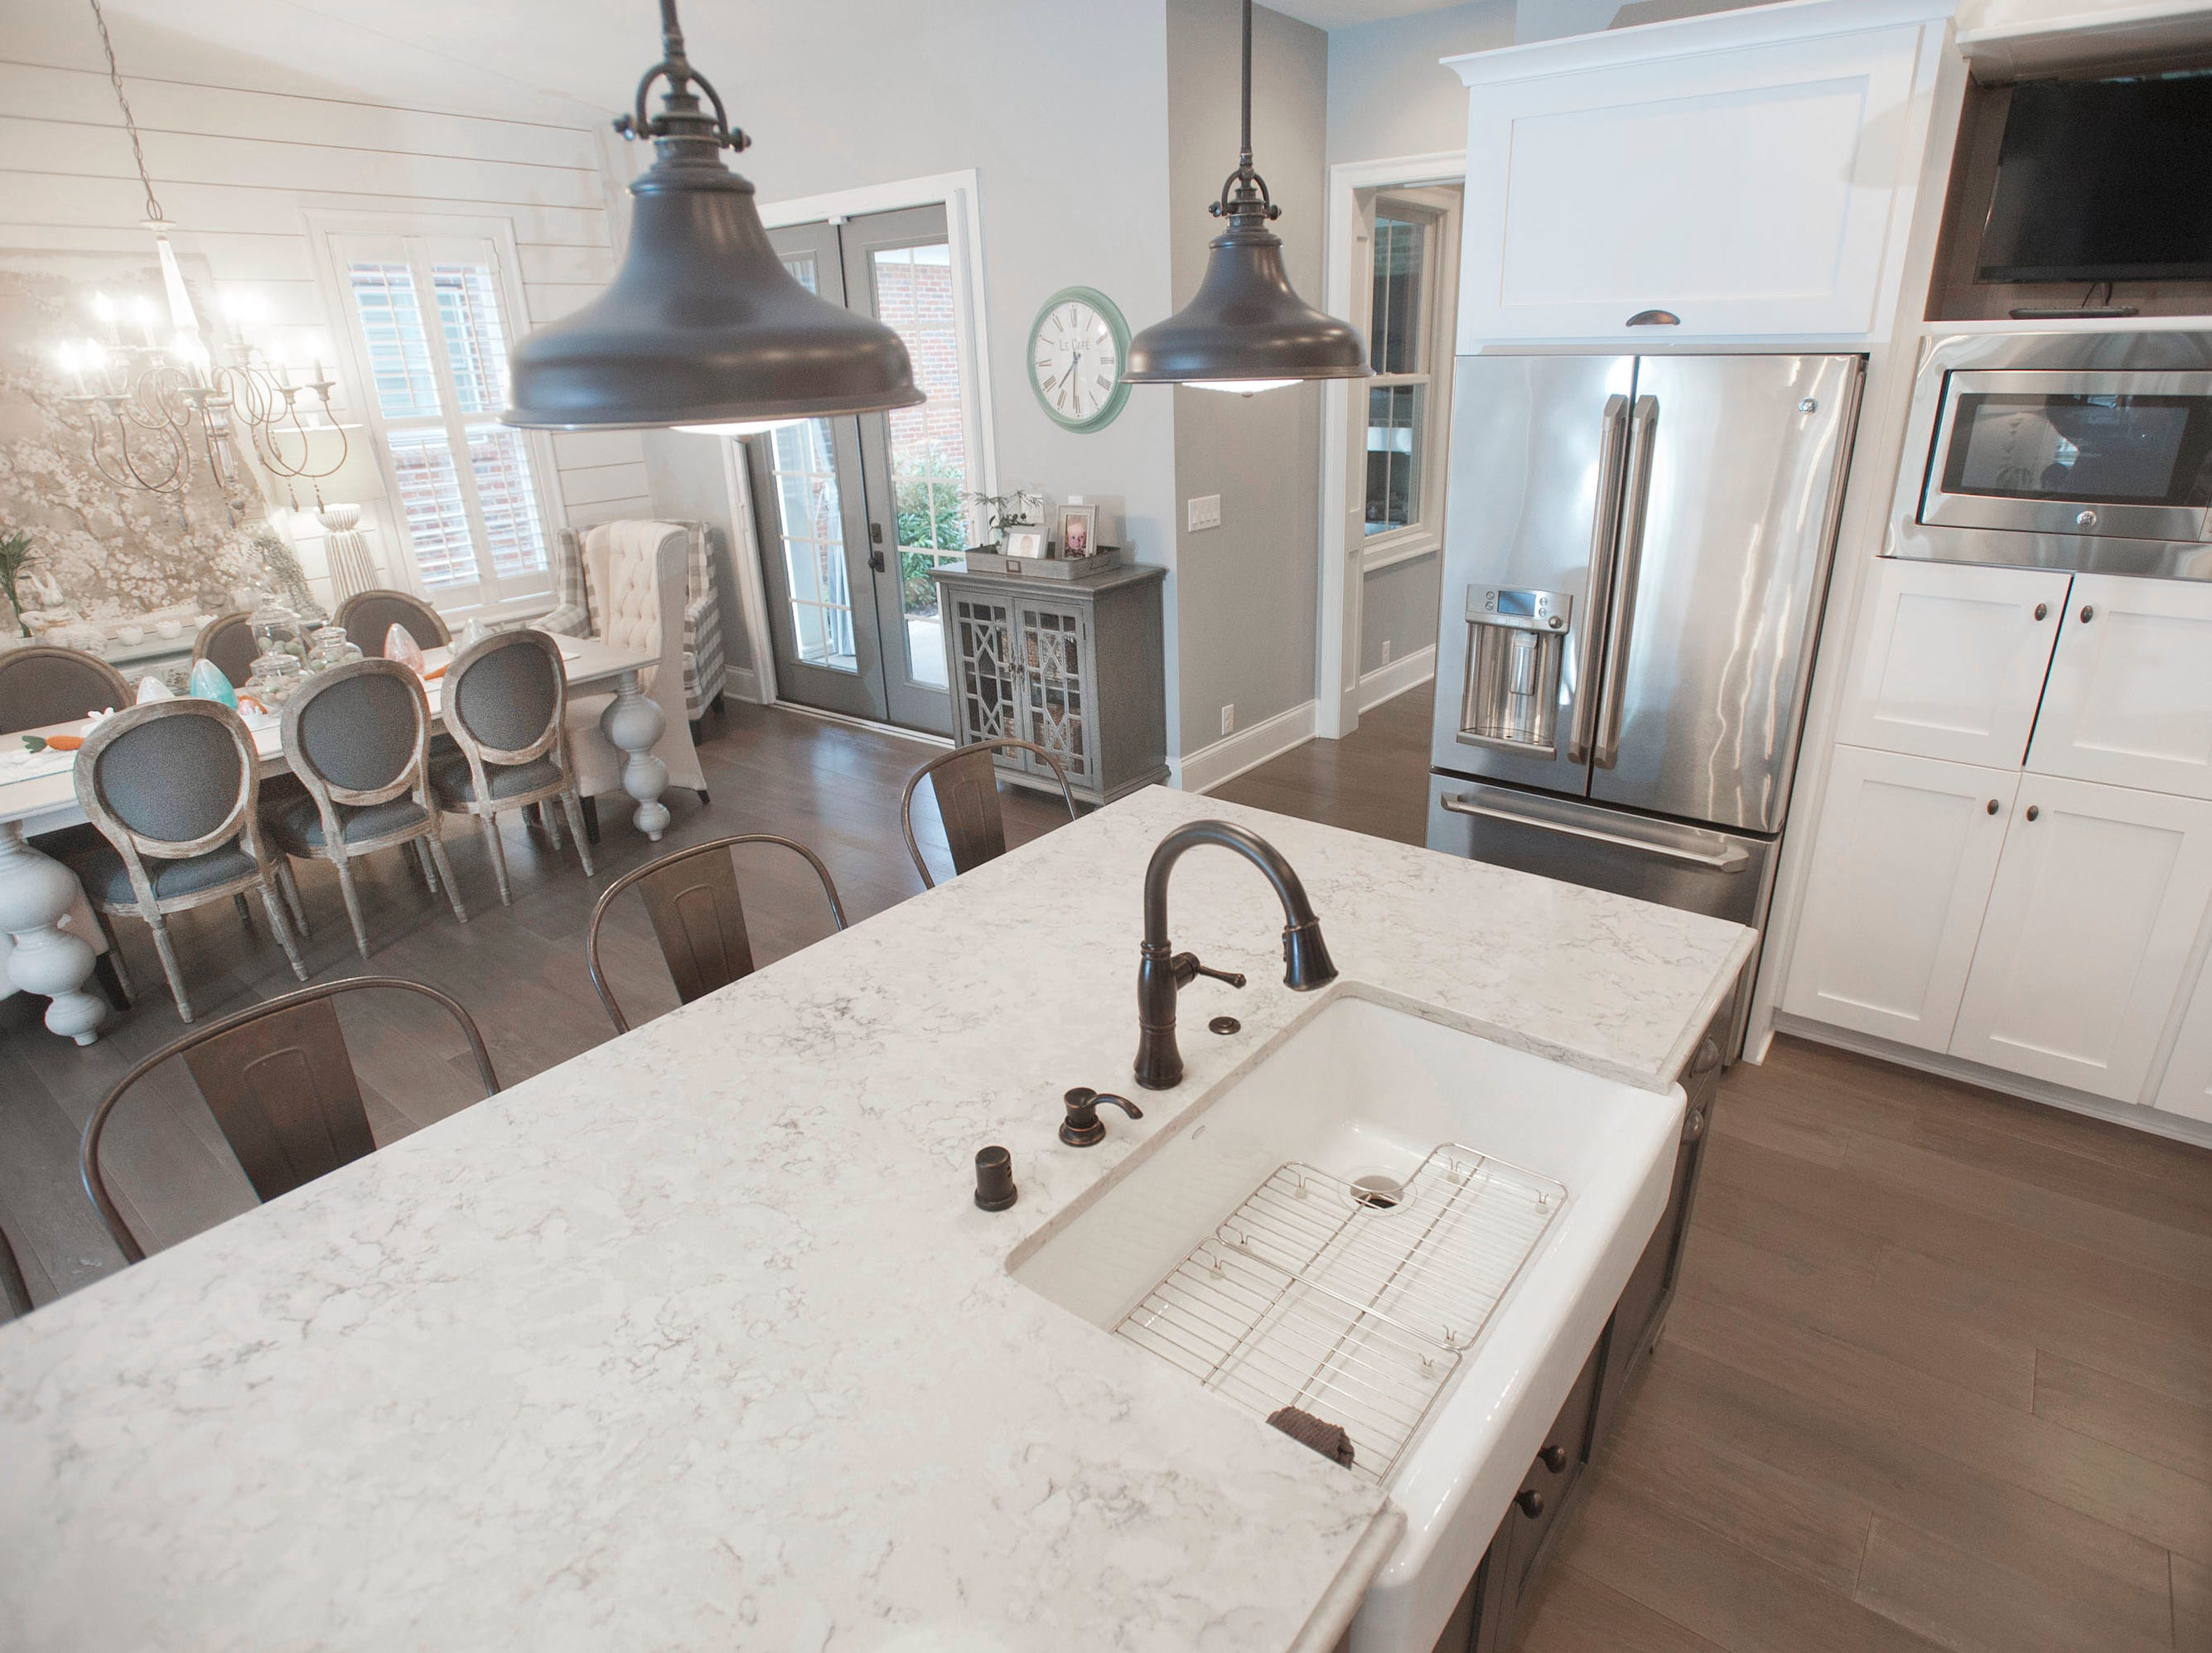 The kitchen of the Hannah home features a farm sink in the kitchen island. The open concept includes the dining room, top left.01 March 2019